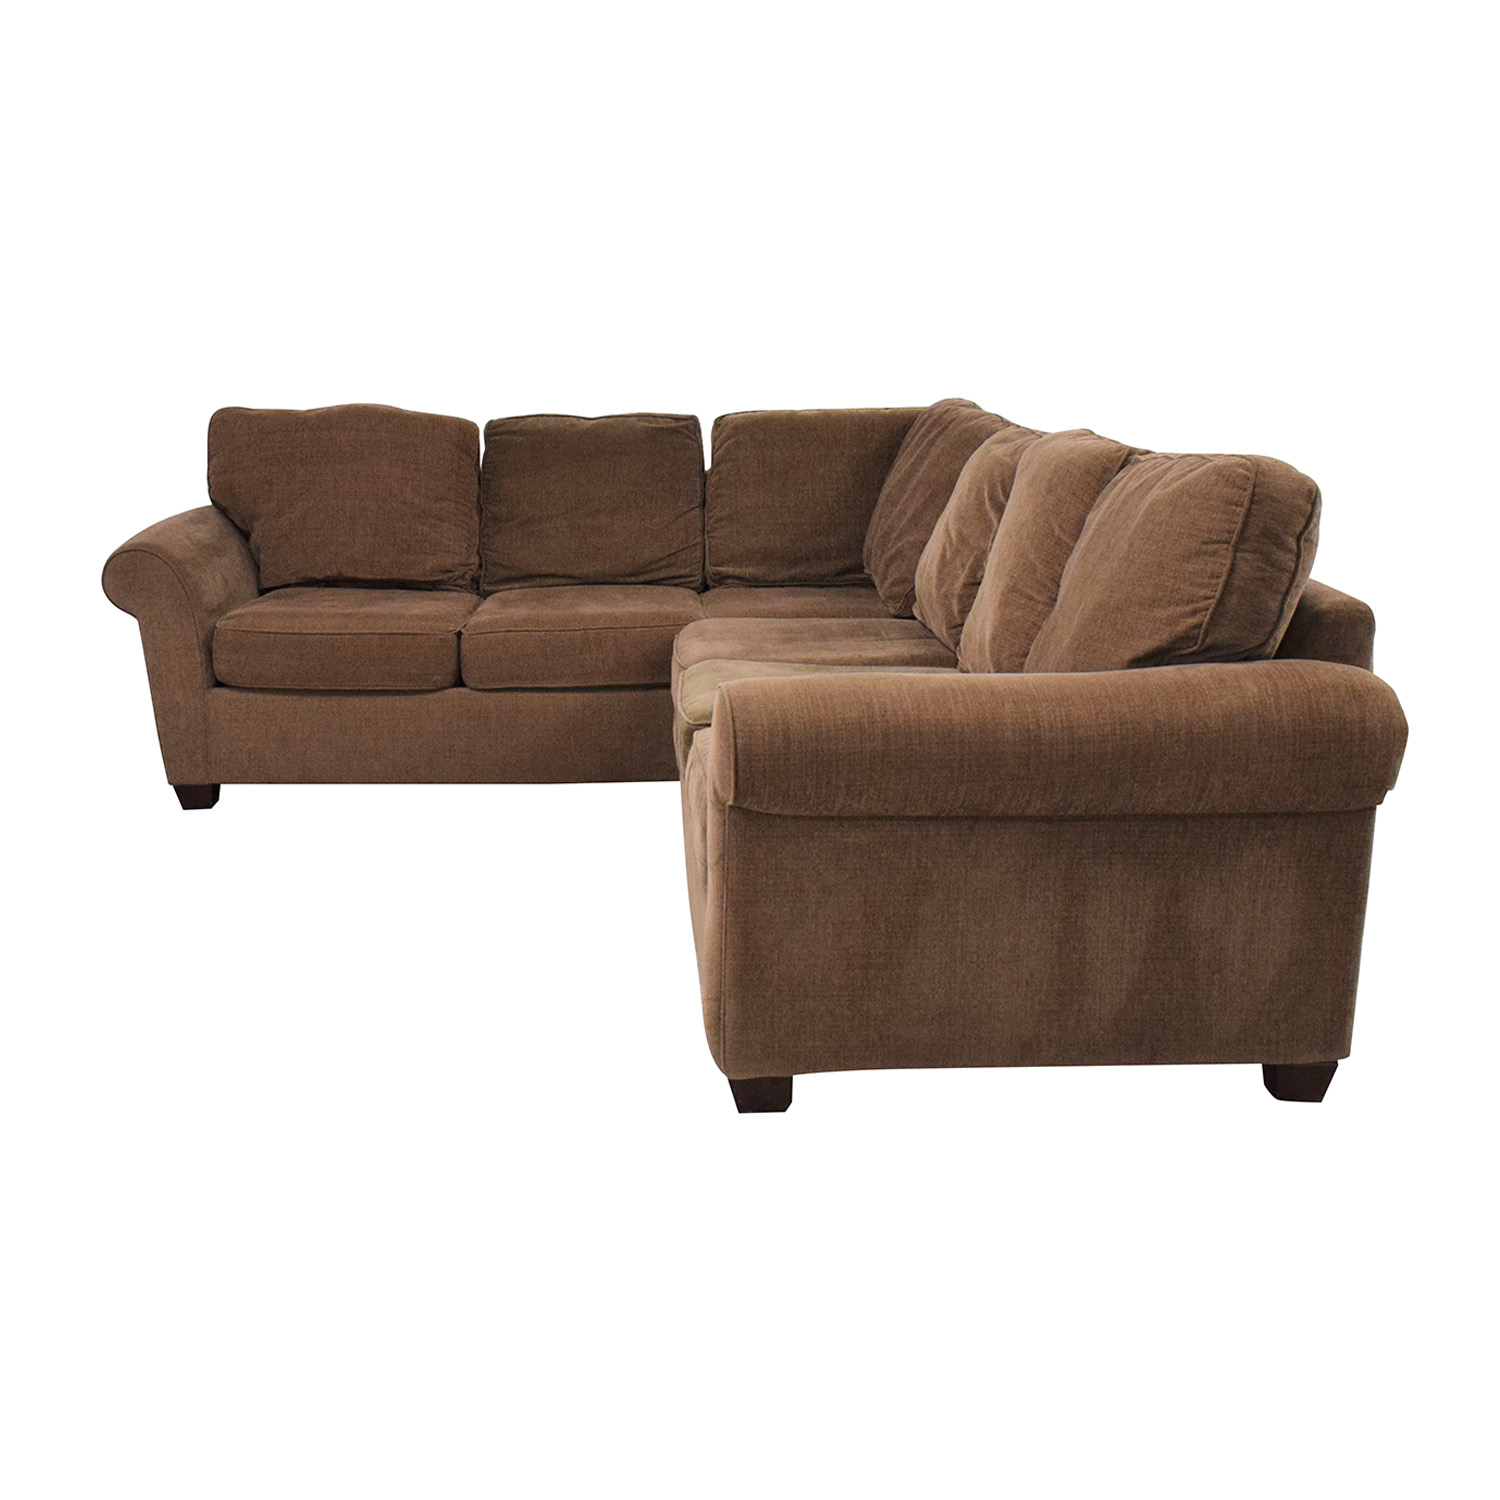 Raymour & Flanigan Raymour & Flanigan Corner Sectional dimensions